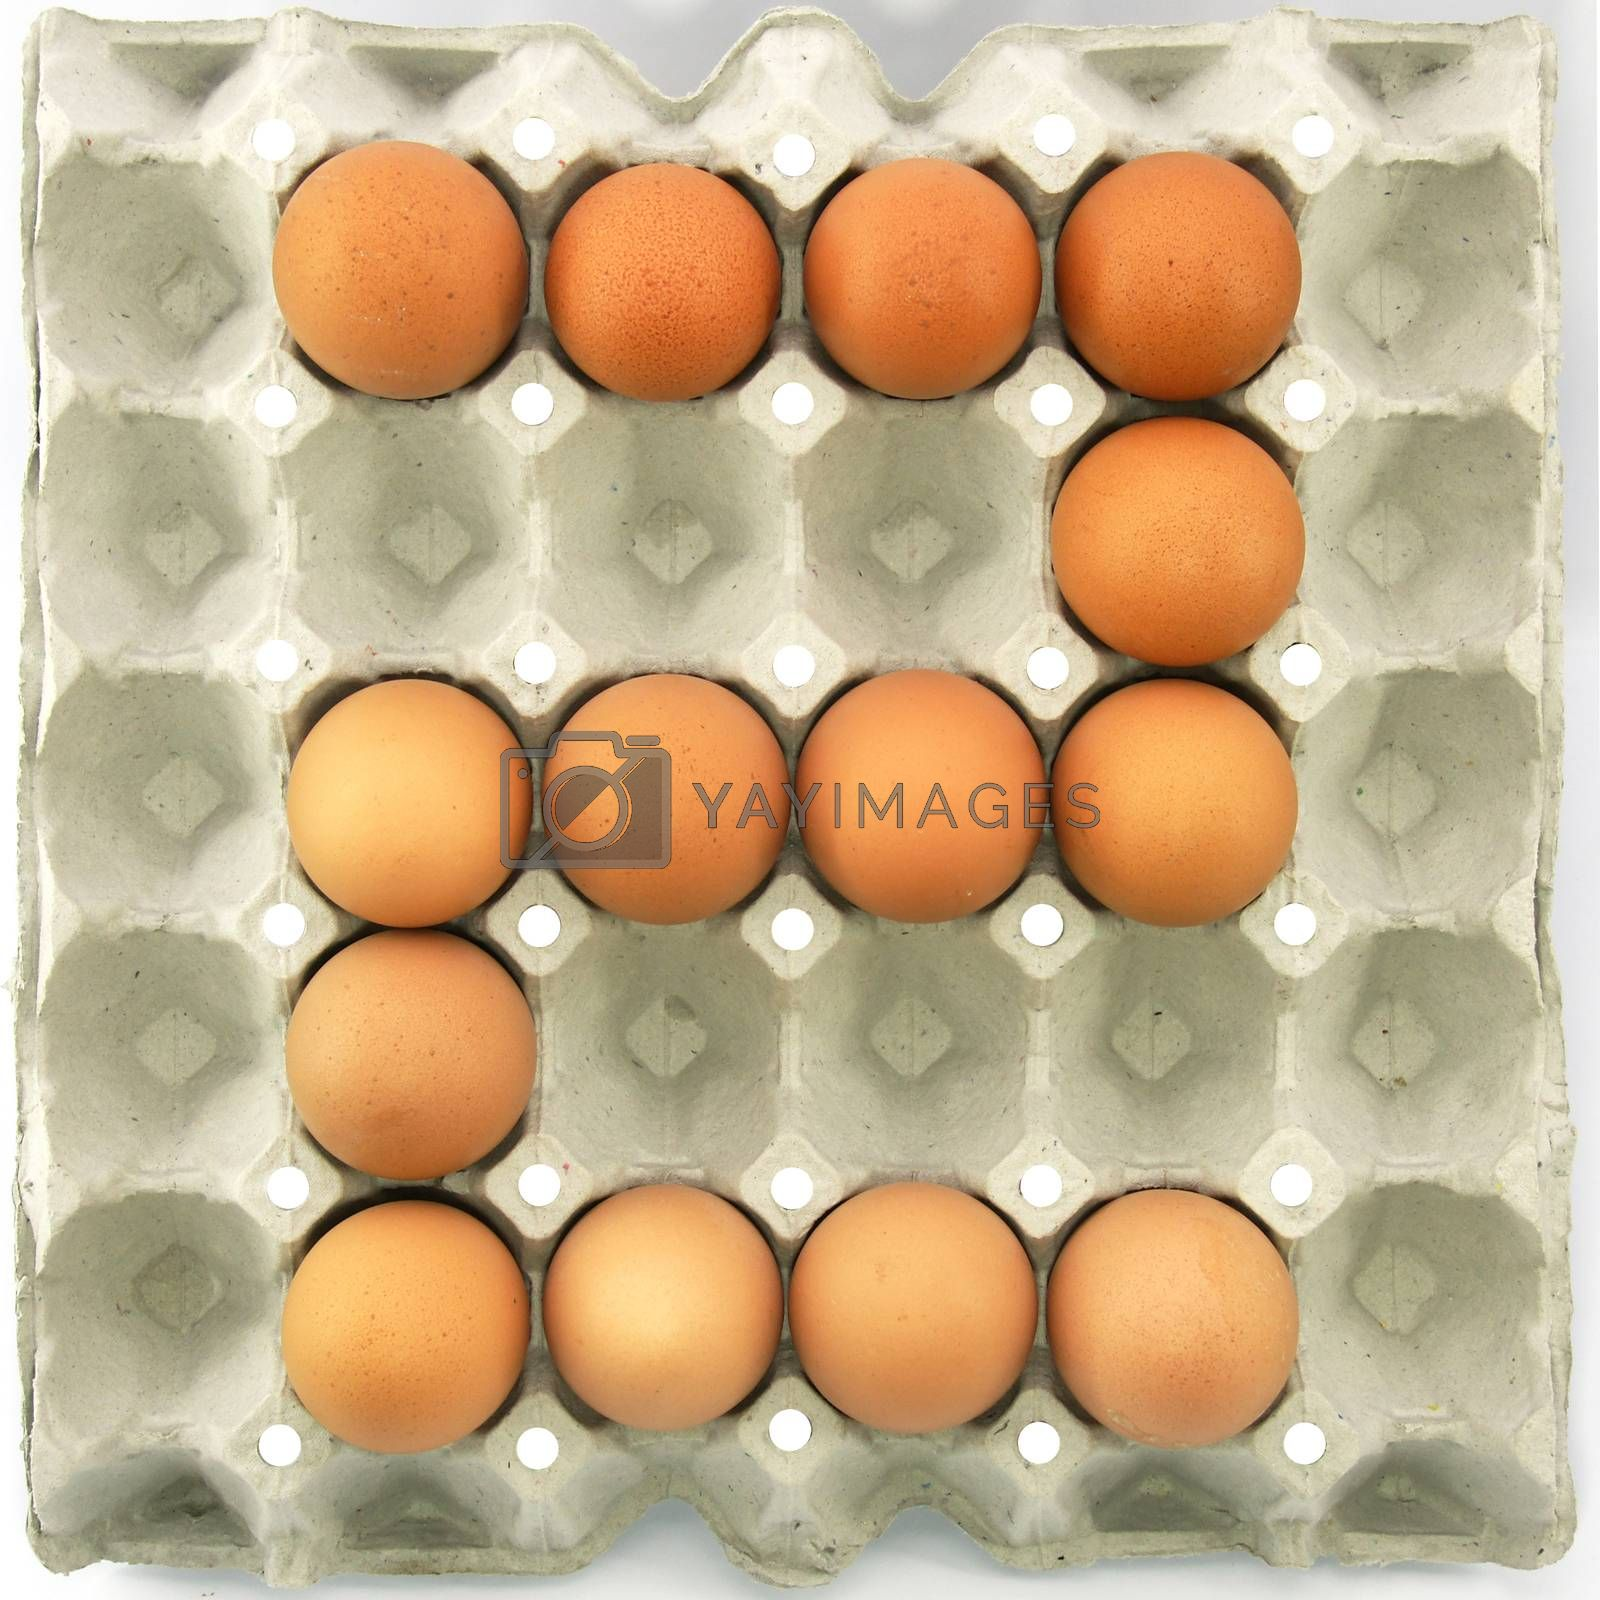 Number two of eggs in the paper package tray